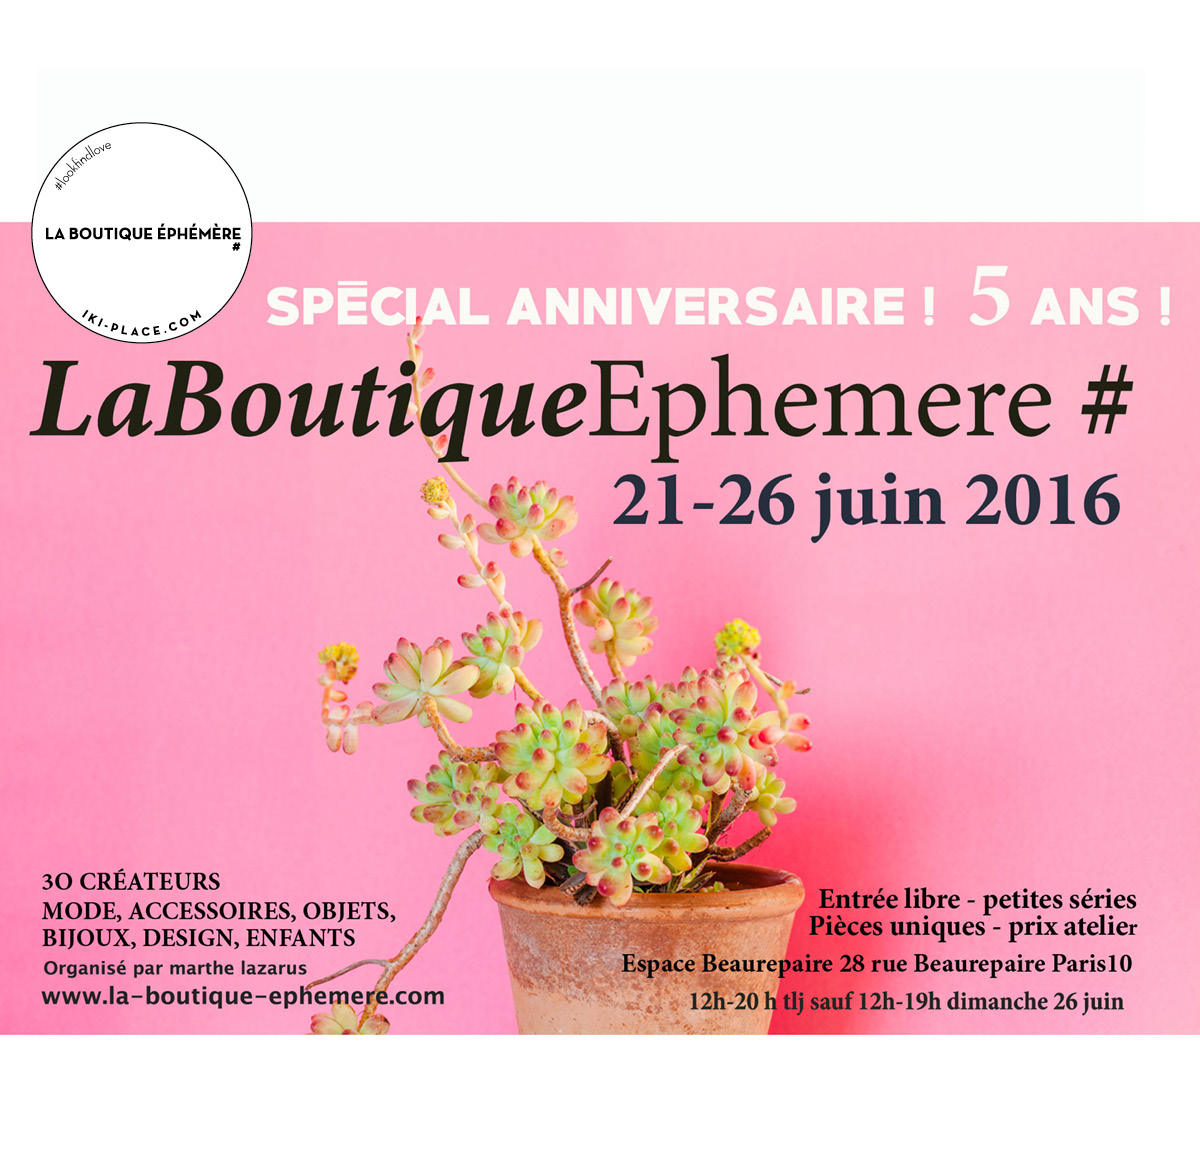 La Boutique Ephemere